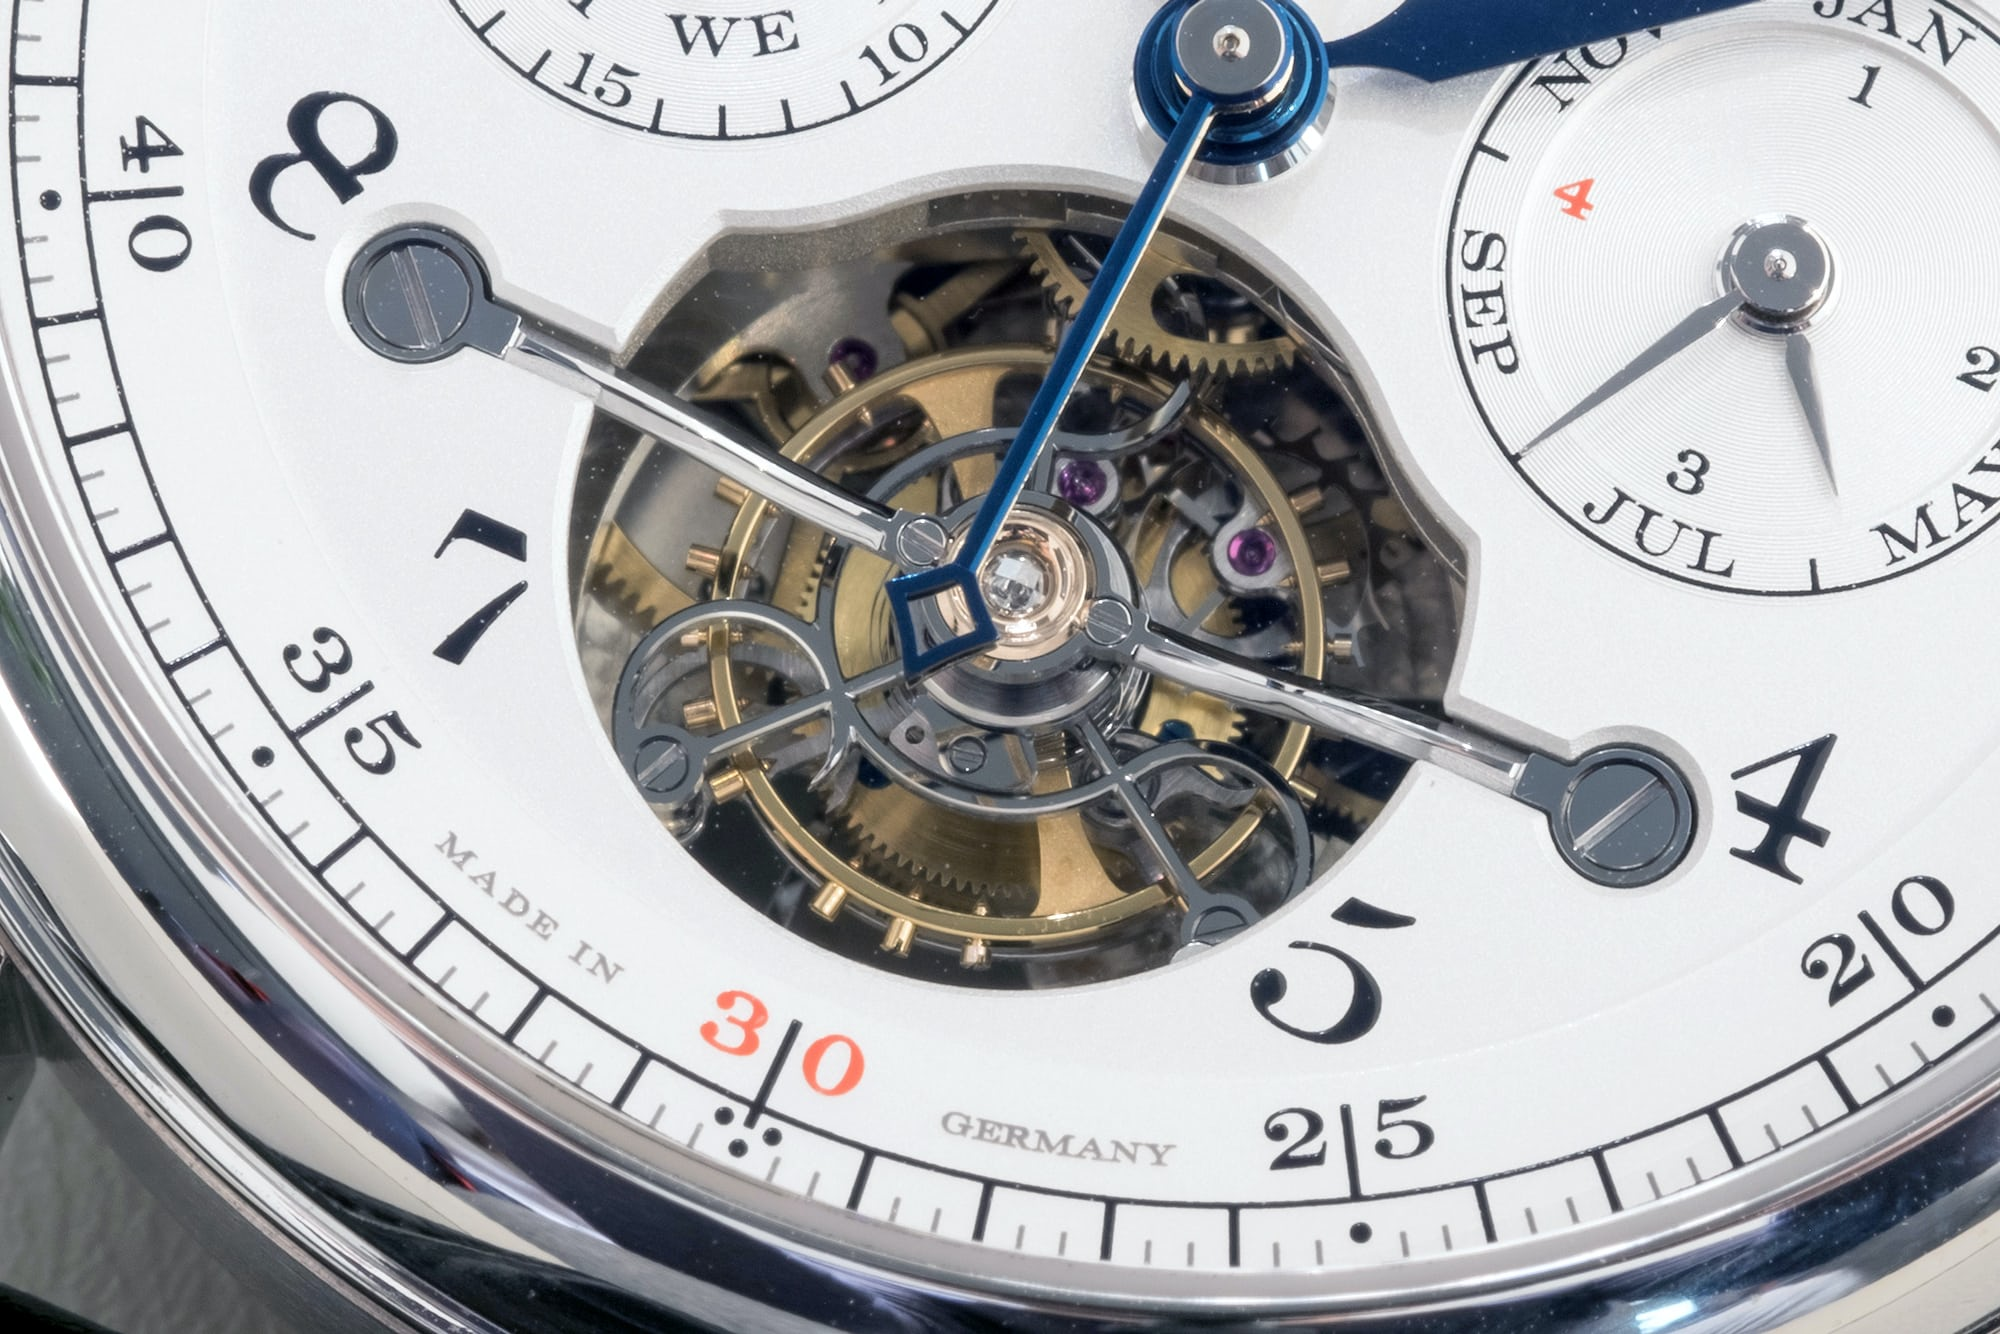 Just Because: All Five A. Lange & Söhne 'Pour le Mérite' Watches In The Same Place, At The Same Time Just Because: All Five A. Lange & Söhne 'Pour le Mérite' Watches In The Same Place, At The Same Time plm 02